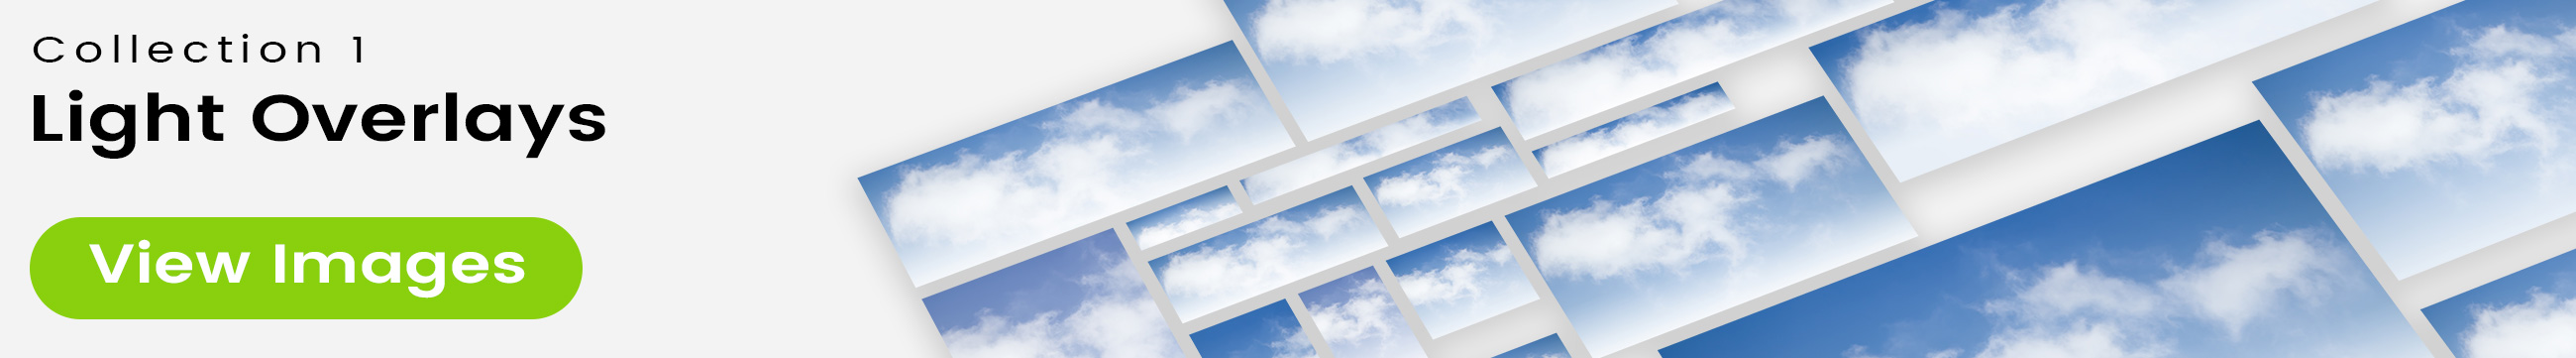 See 25 bonus images included with clouds stock image 9480. Collection 1 of 4 features a light overlay design.